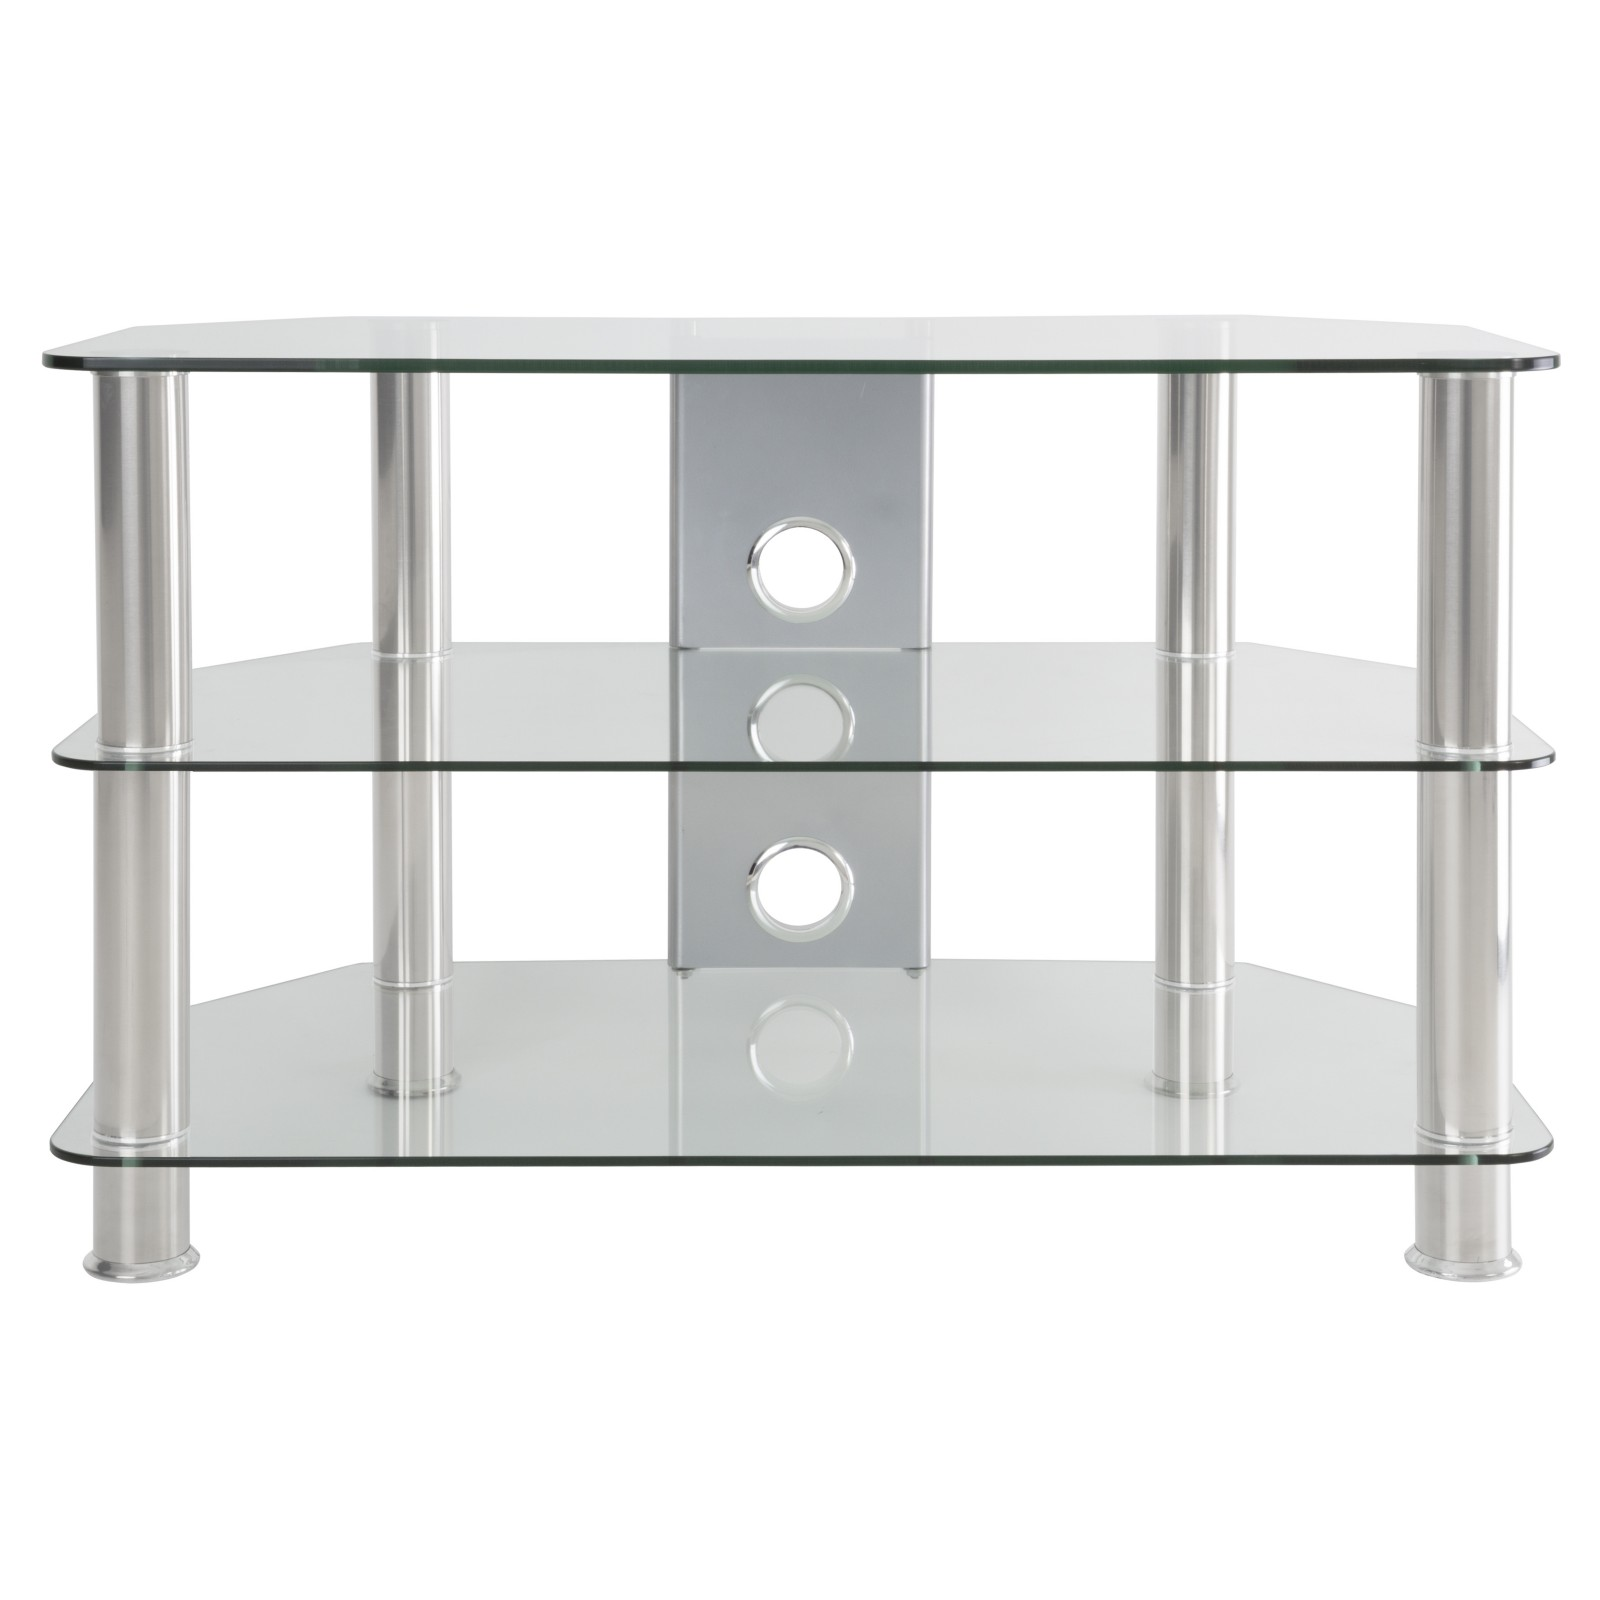 "John Lewis GP800 TV Stand for TVs up to 40"" Clear"